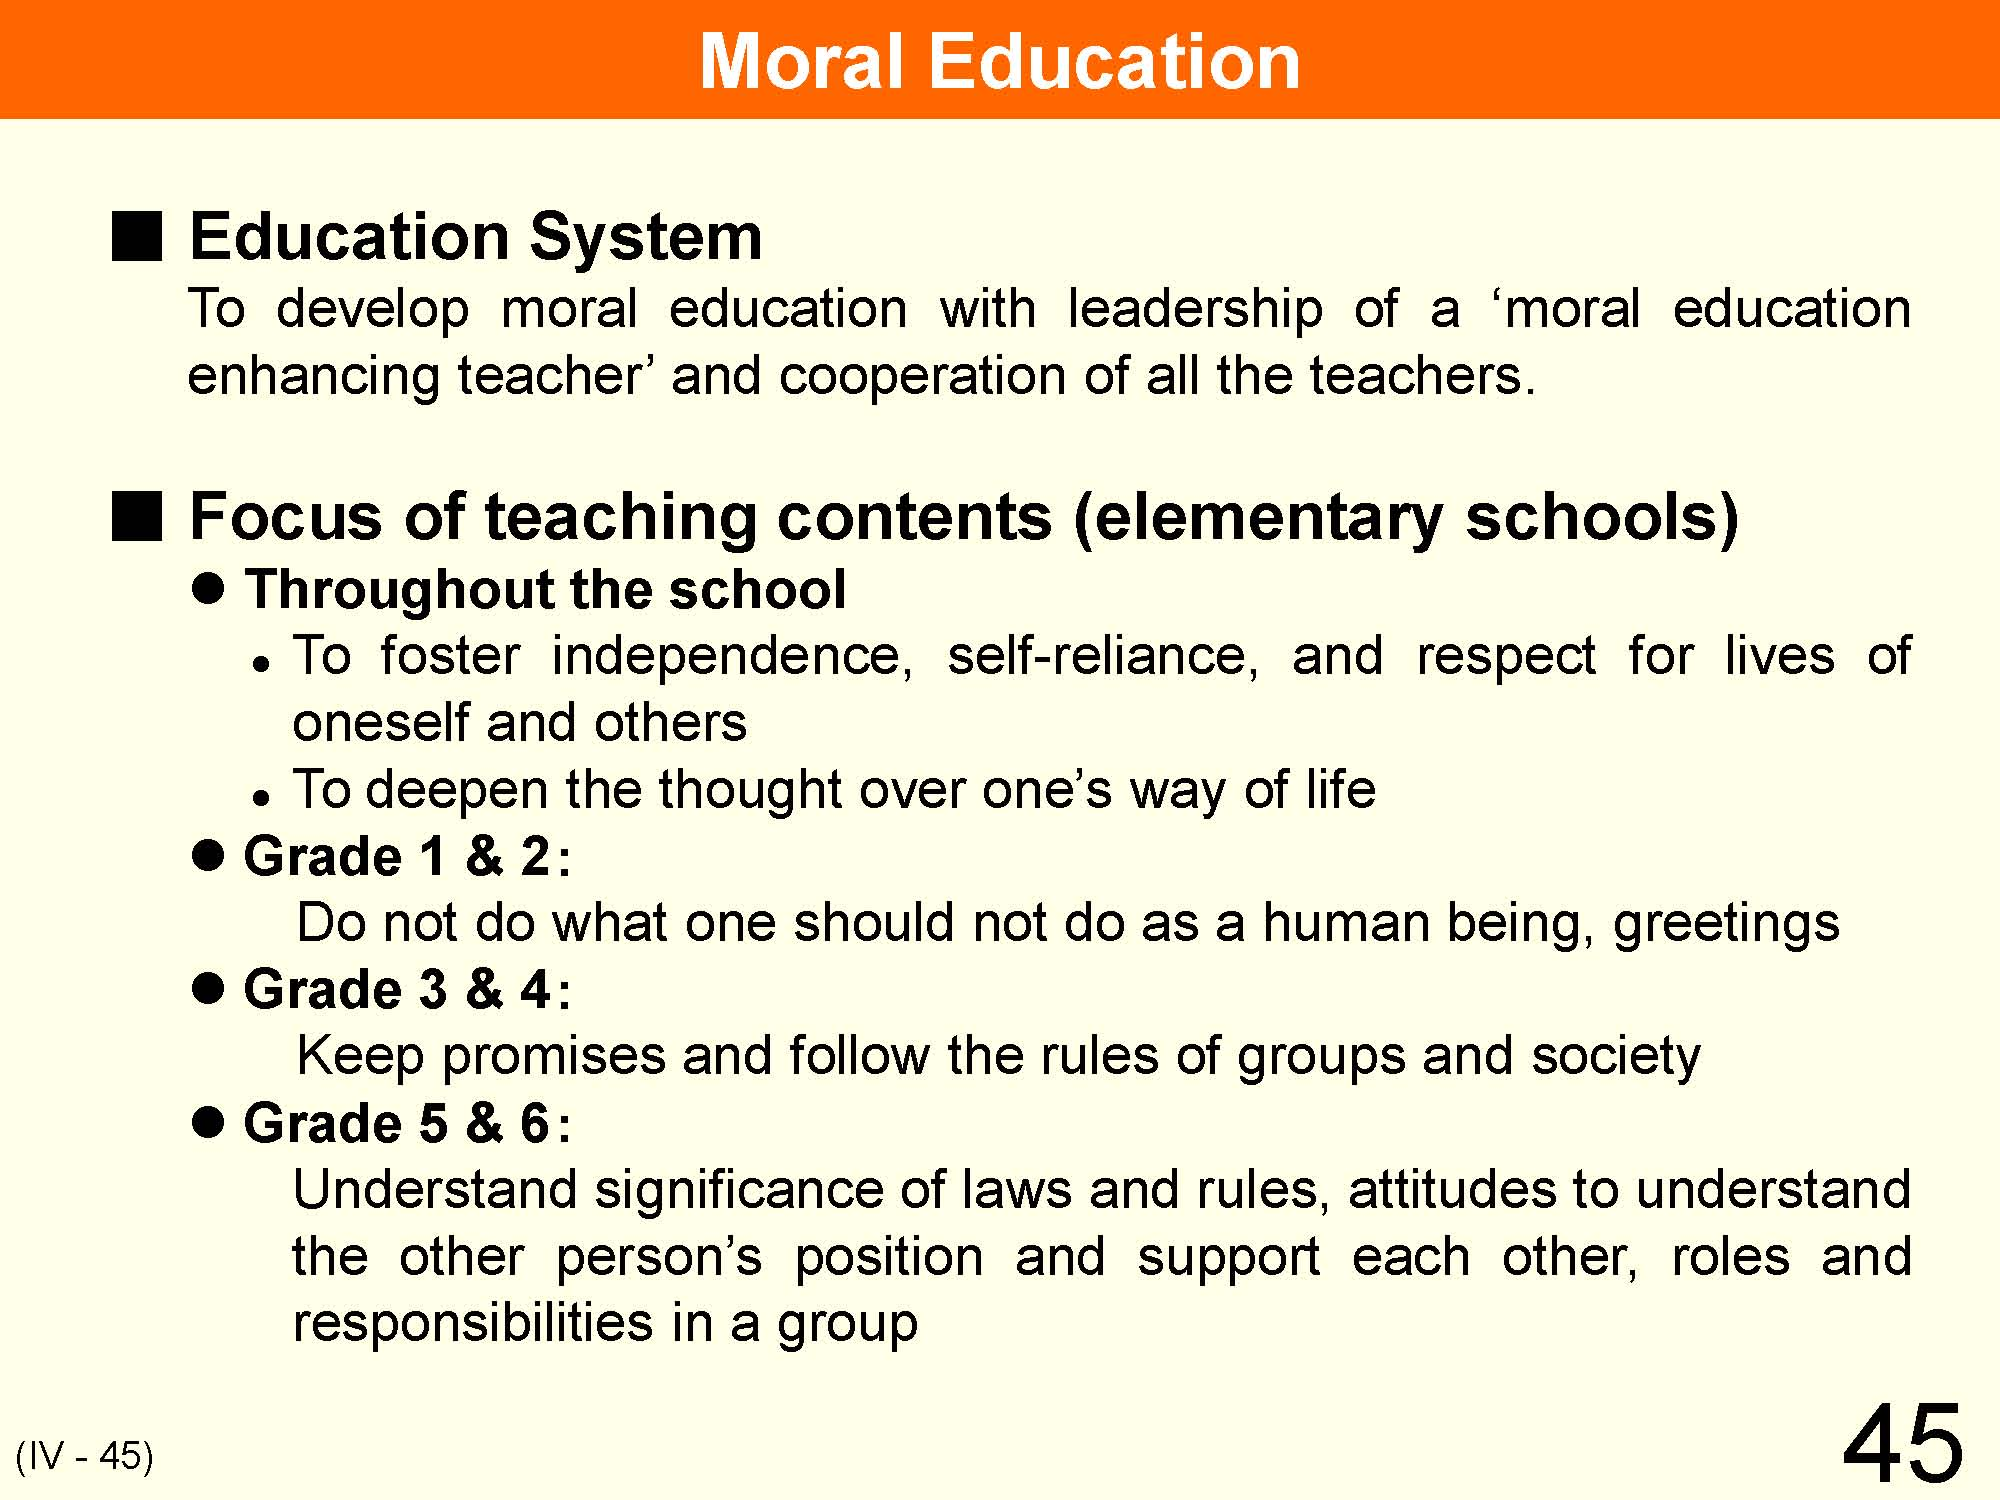 degradation moral values essay Religion and morality are closely connected with each other why should i believe in your morals essays on the rights of the child by by charles william king, [1908], full text etext at this area deals with christian theology and morality degradation of moral values in indian society 27 minutes ago.